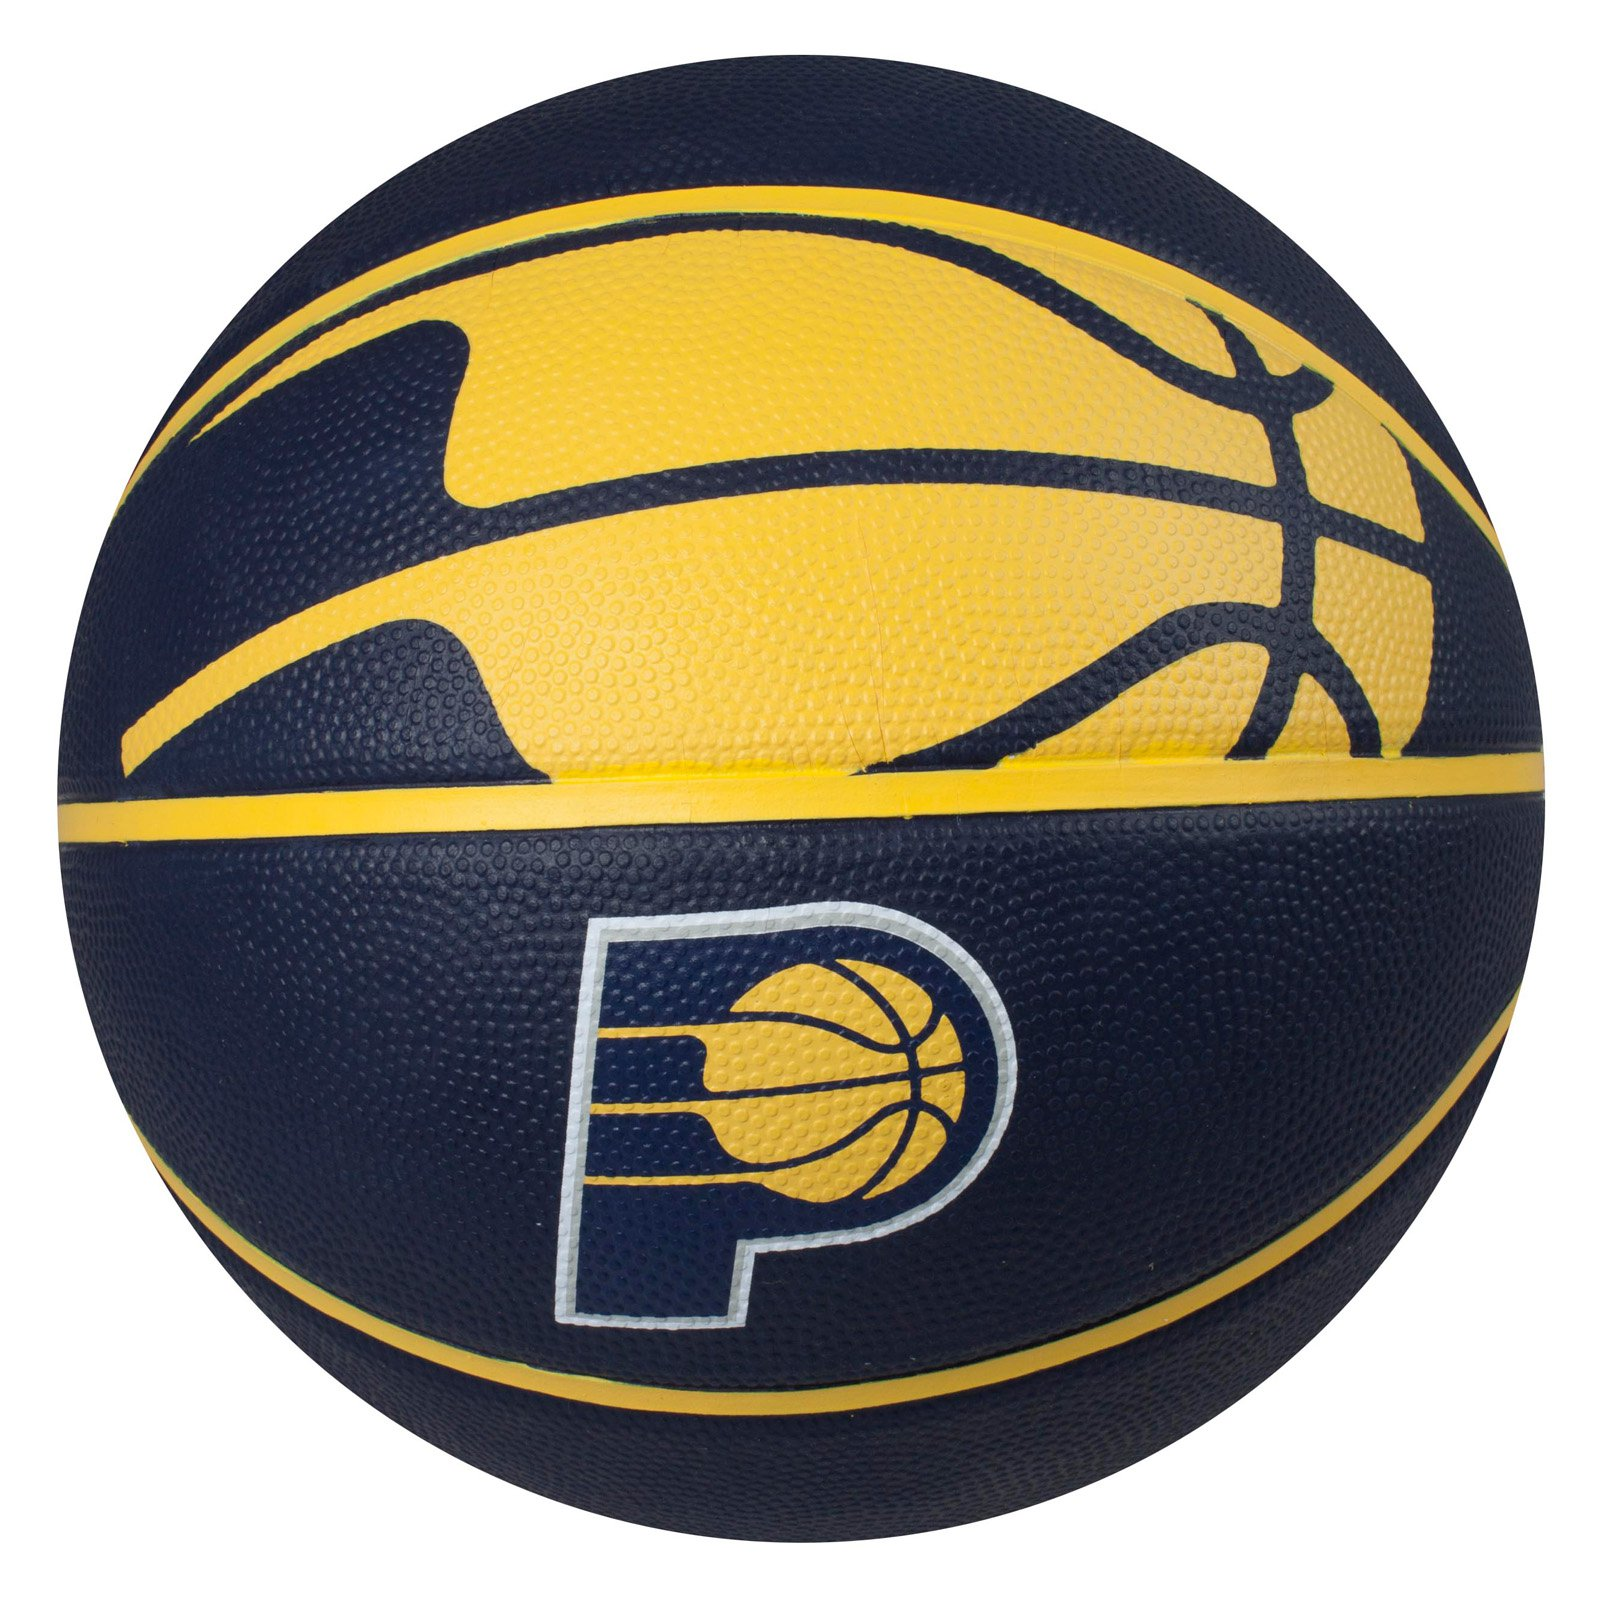 Spalding Team Logo Basketball, Indiana Pacers